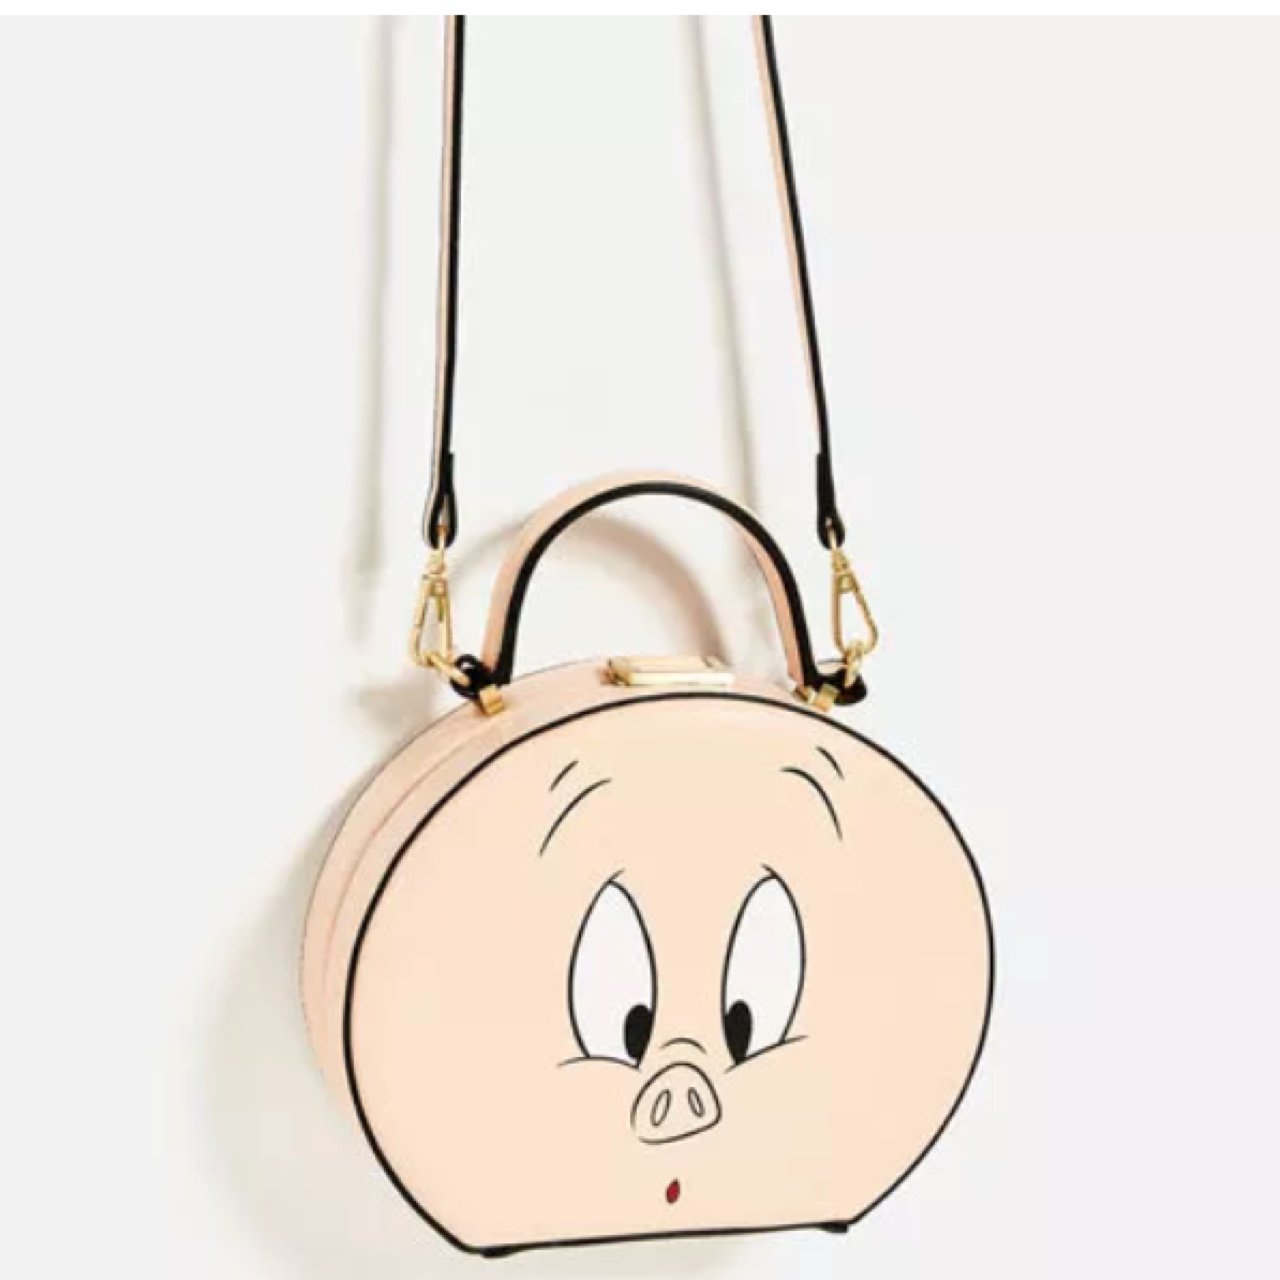 Zara Porky Bag